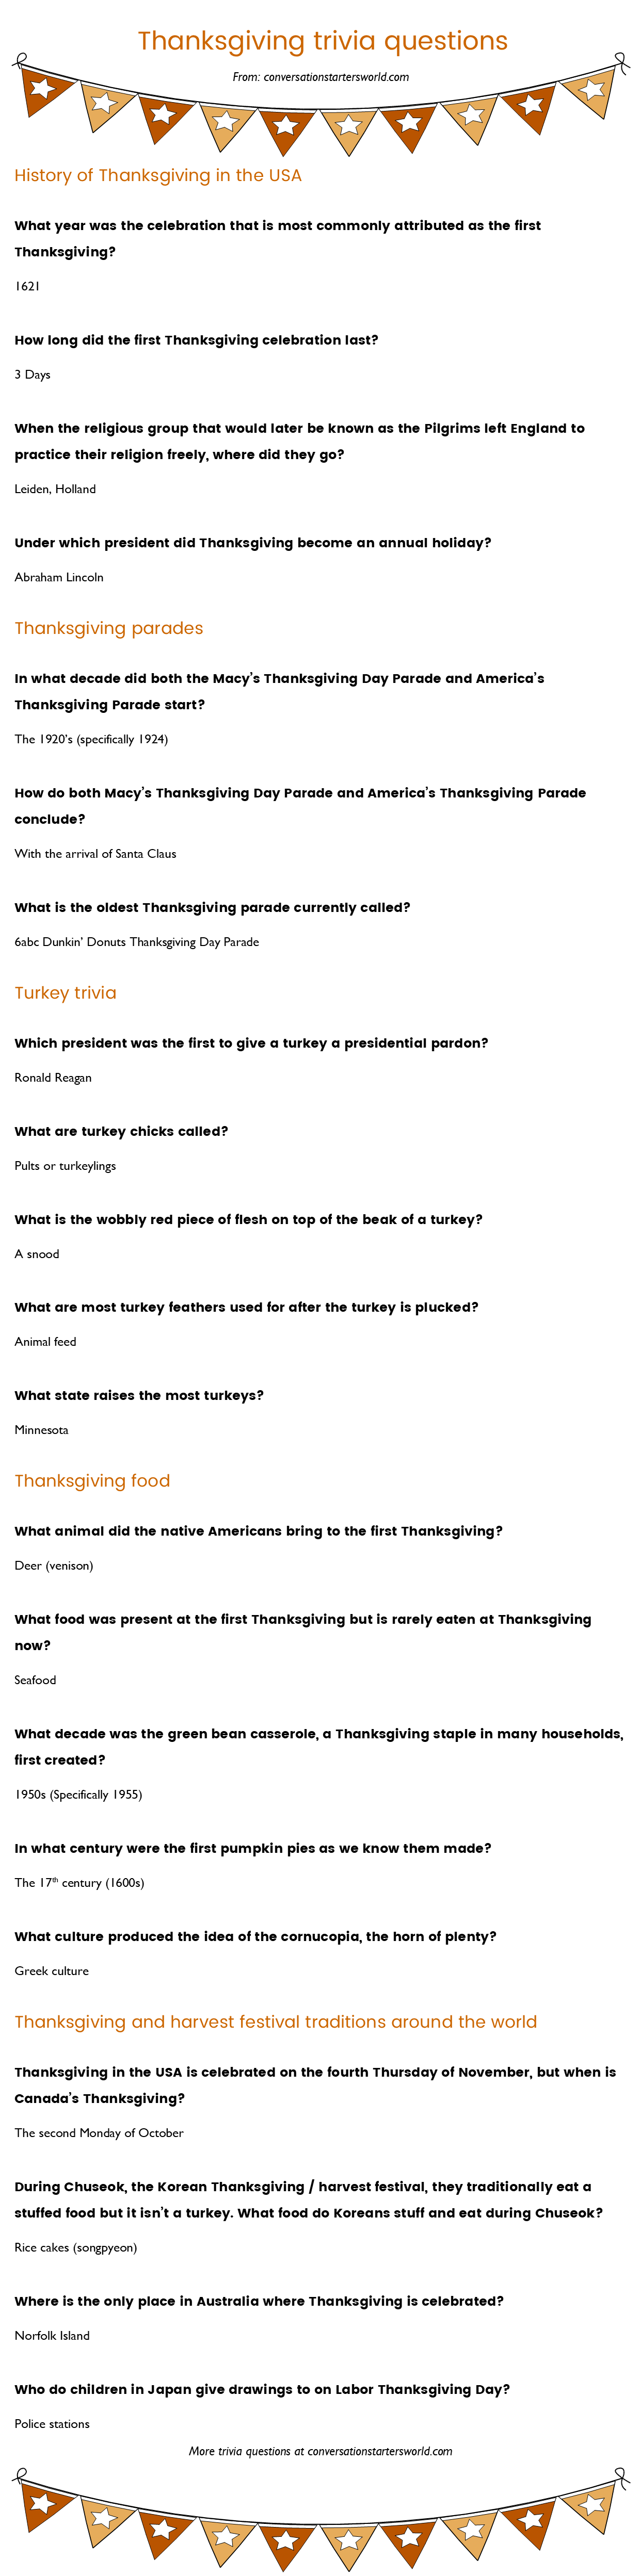 photo relating to Printable Quizzes for Fun titled 21 Thanksgiving trivia issues greatest men and women dont recognize the